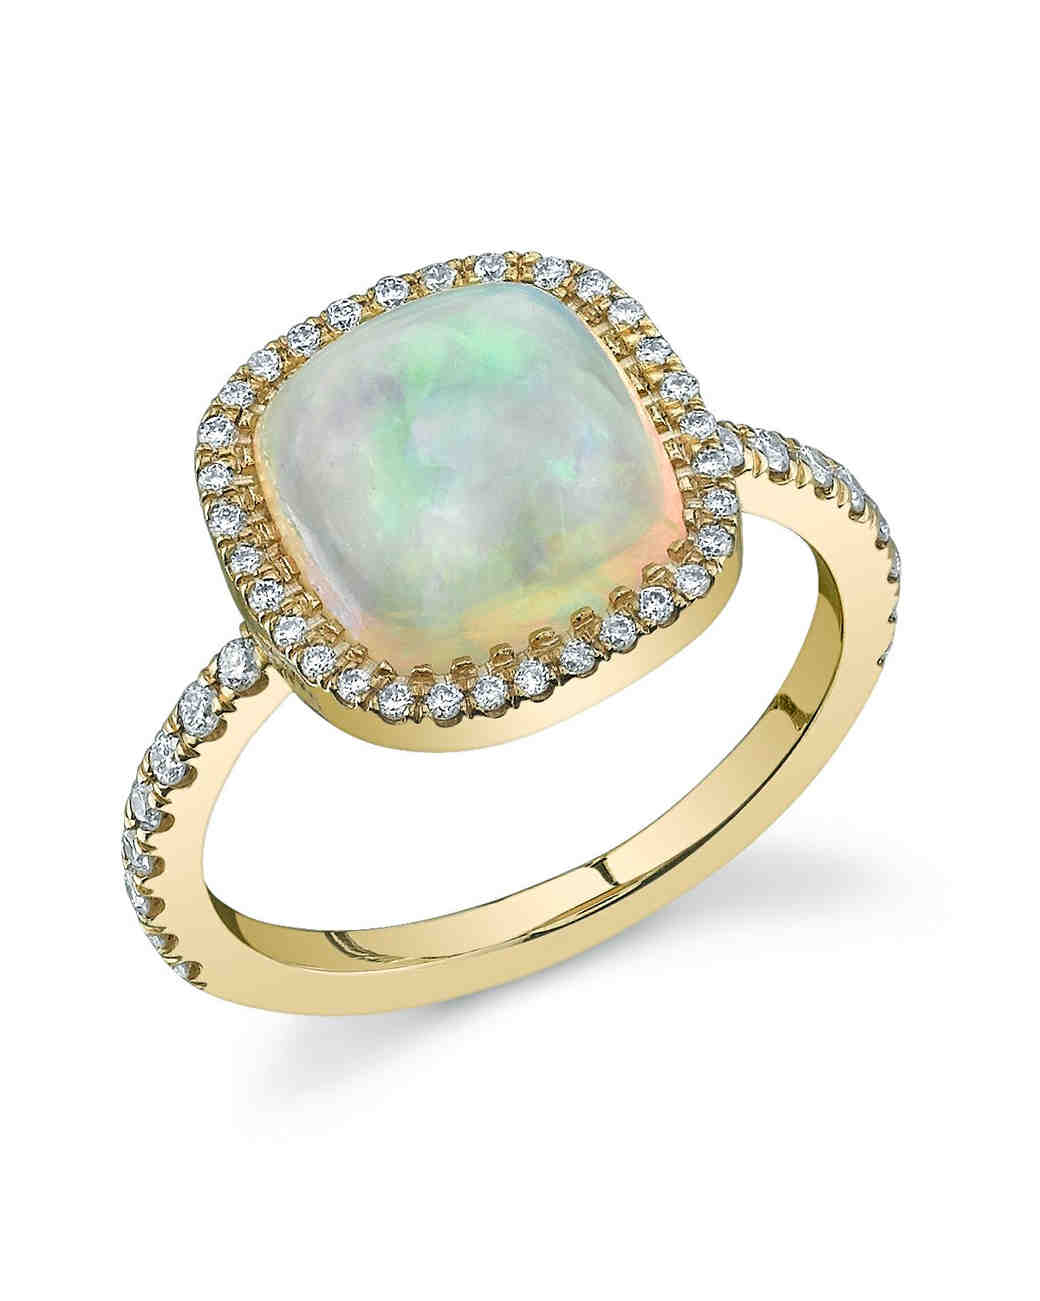 71c5341defc0b9 32 Unique Opal Engagement Rings | Martha Stewart Weddings